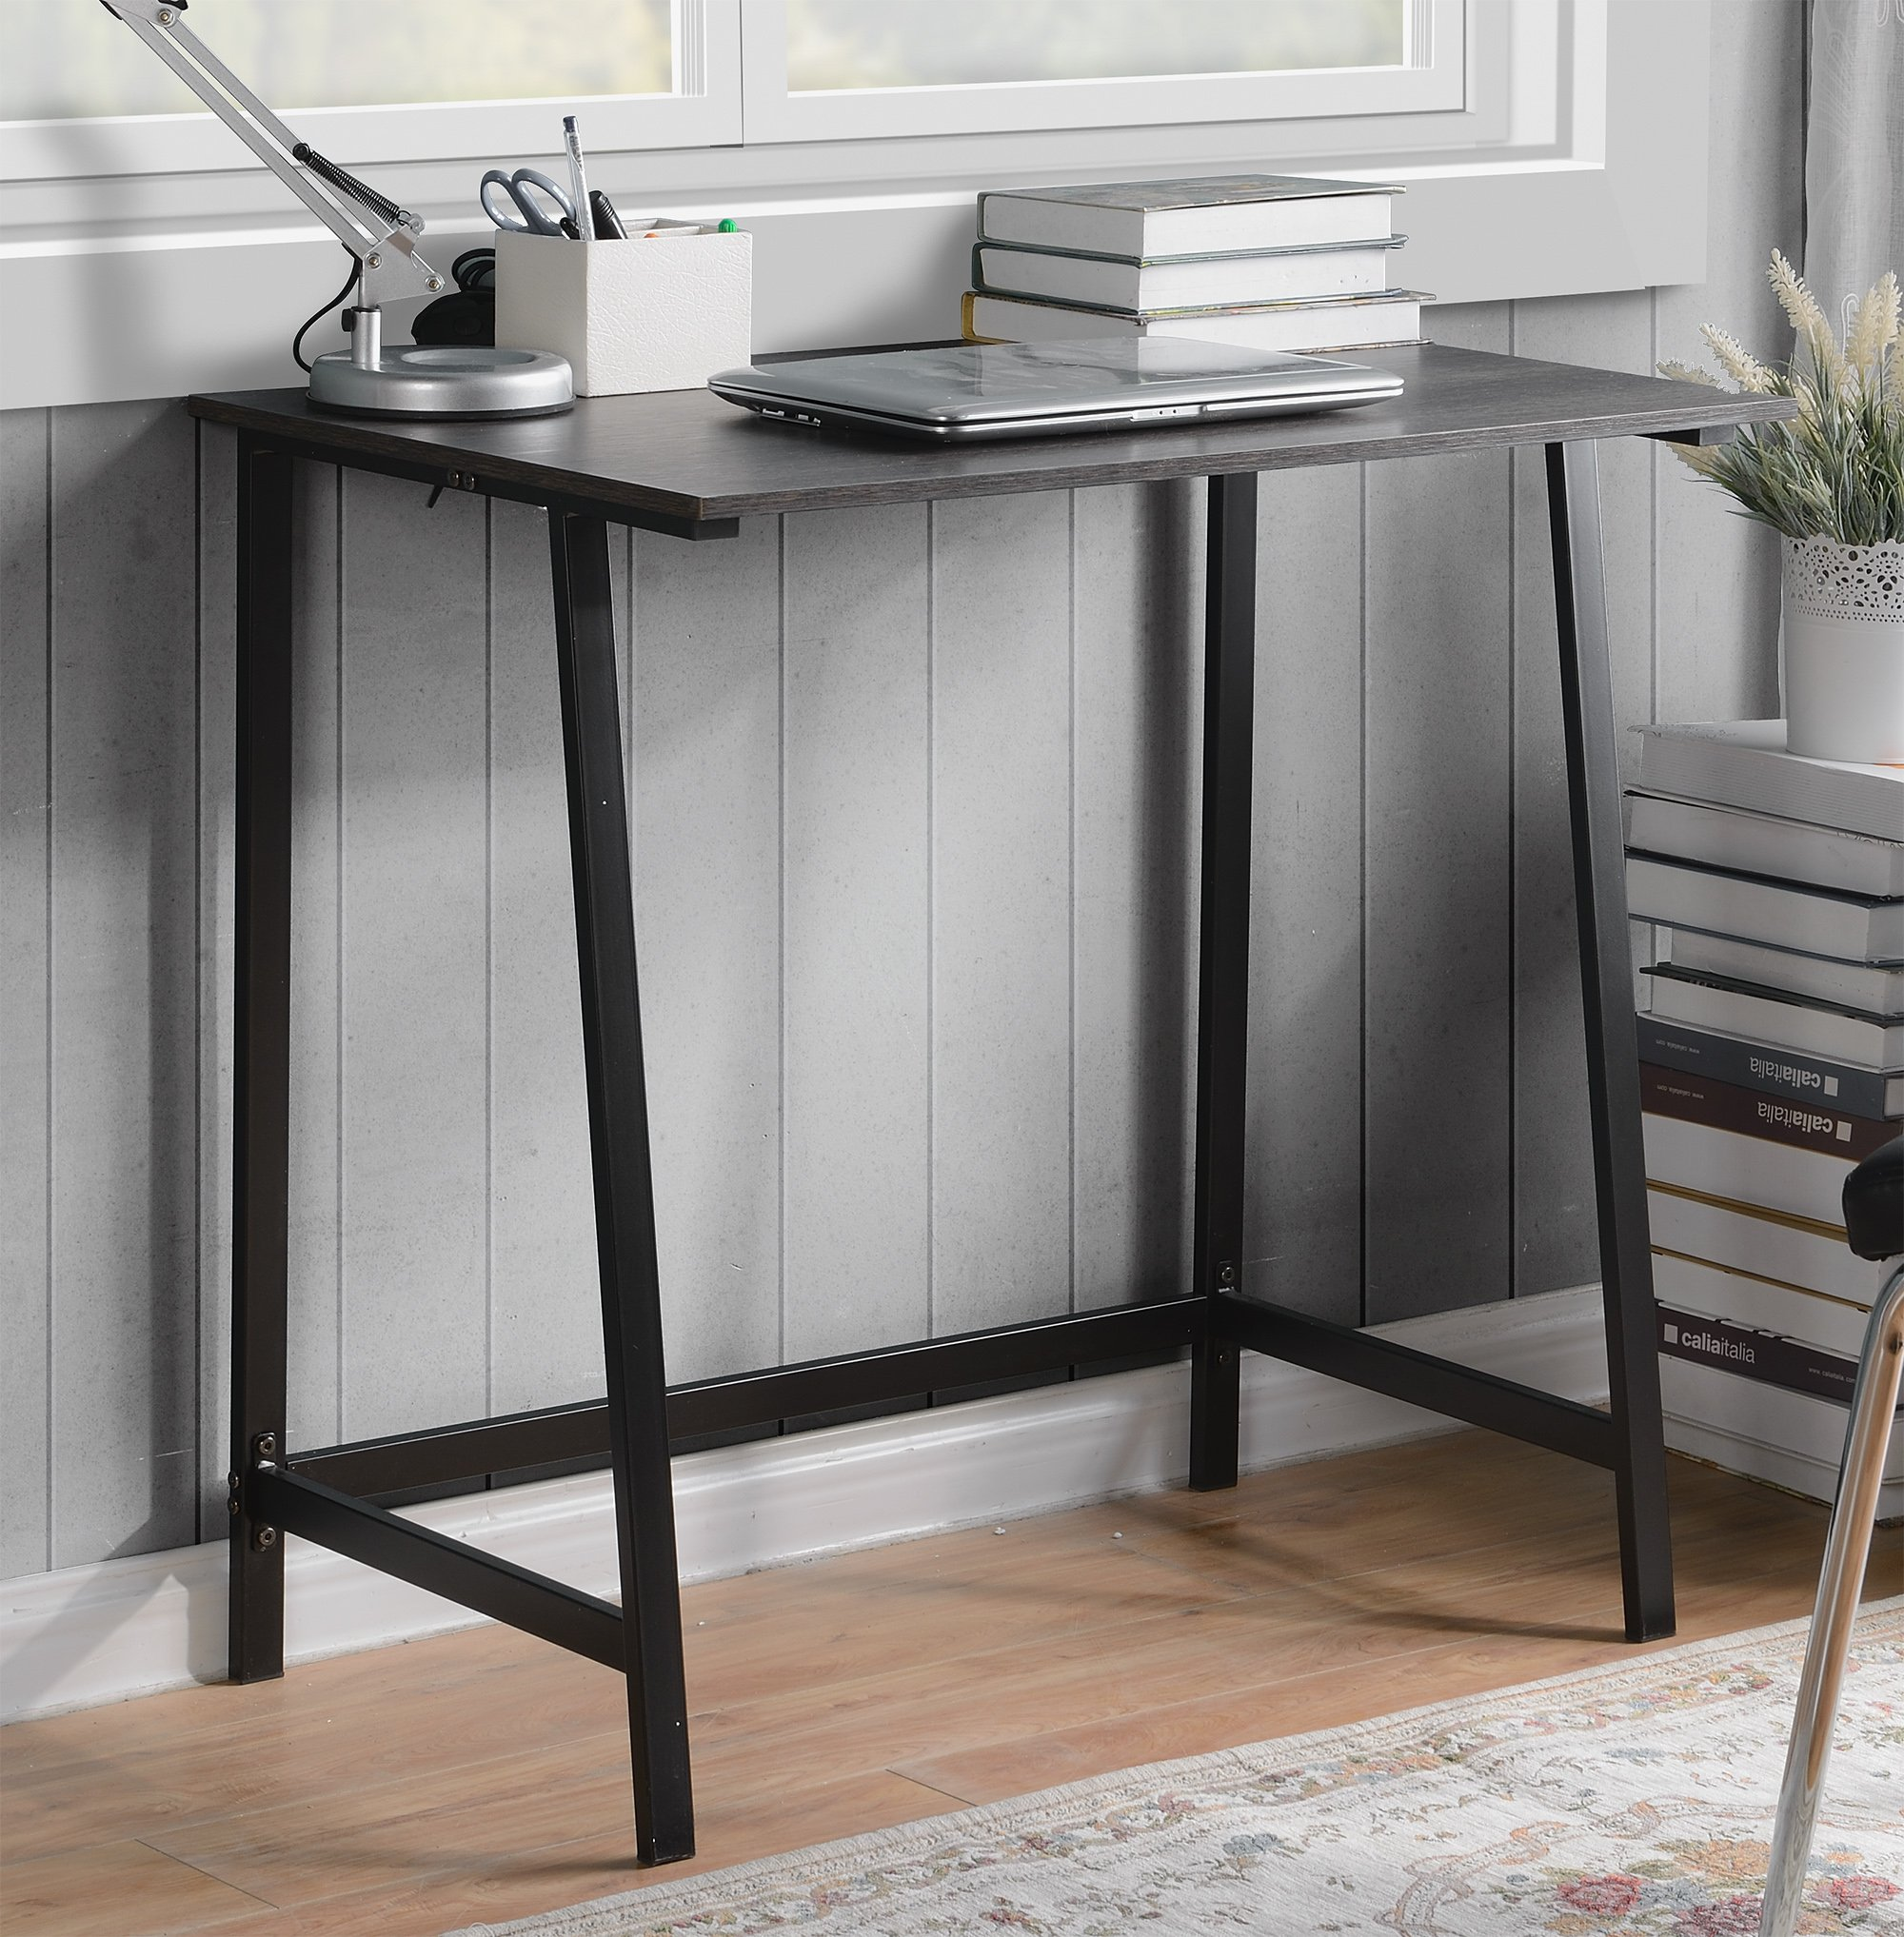 Homestar Oberon Writing Desk - Homestar writing desk in dark oak Finish, with a powder coated metal base that provides a strong & Sturdy design. Made of Particle Board and powder core metal Light weight and easy to assemble - writing-desks, living-room-furniture, living-room - 91zvFLuStRL -